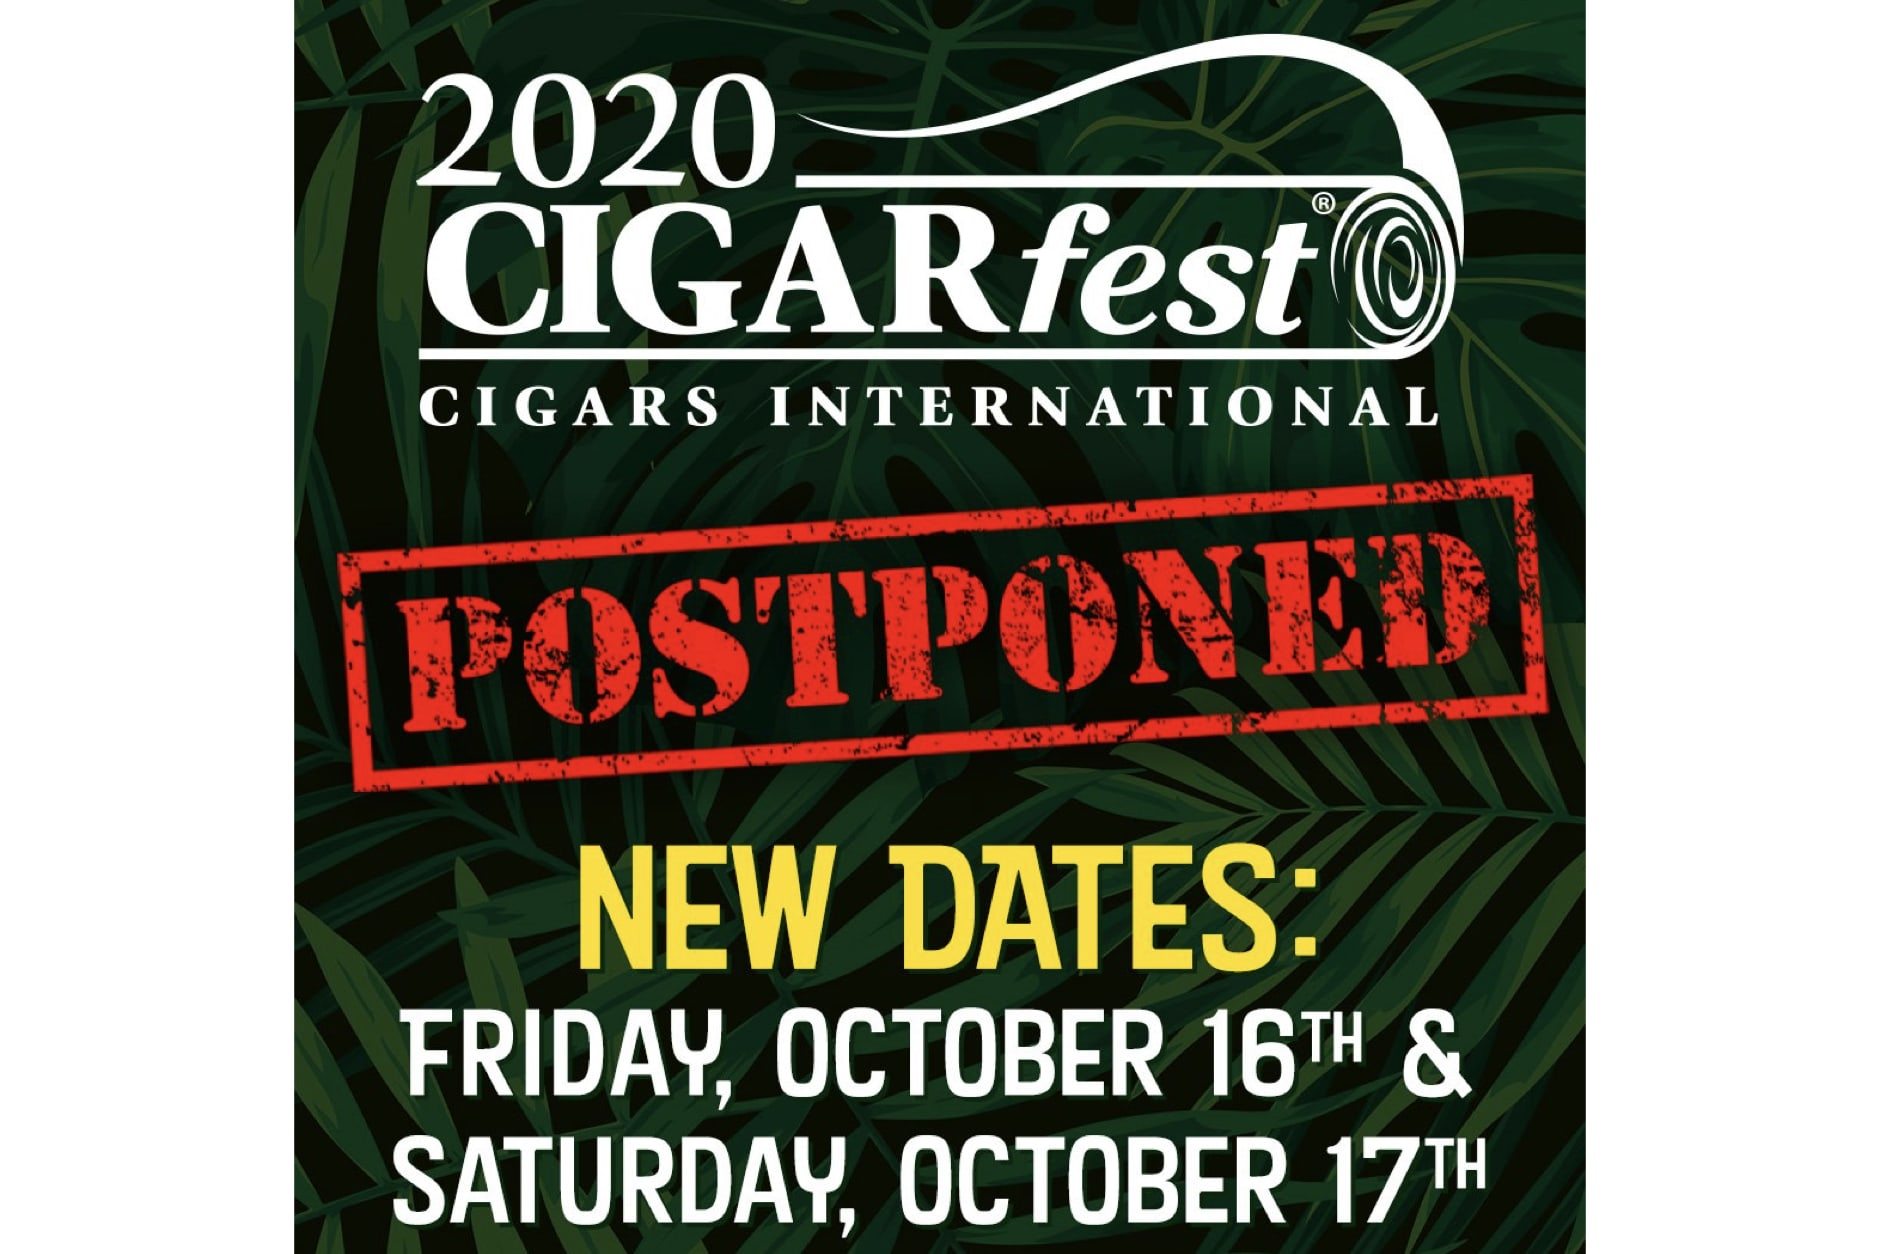 Cigarfest 2020 Postponed to October 16-17 Featured Image